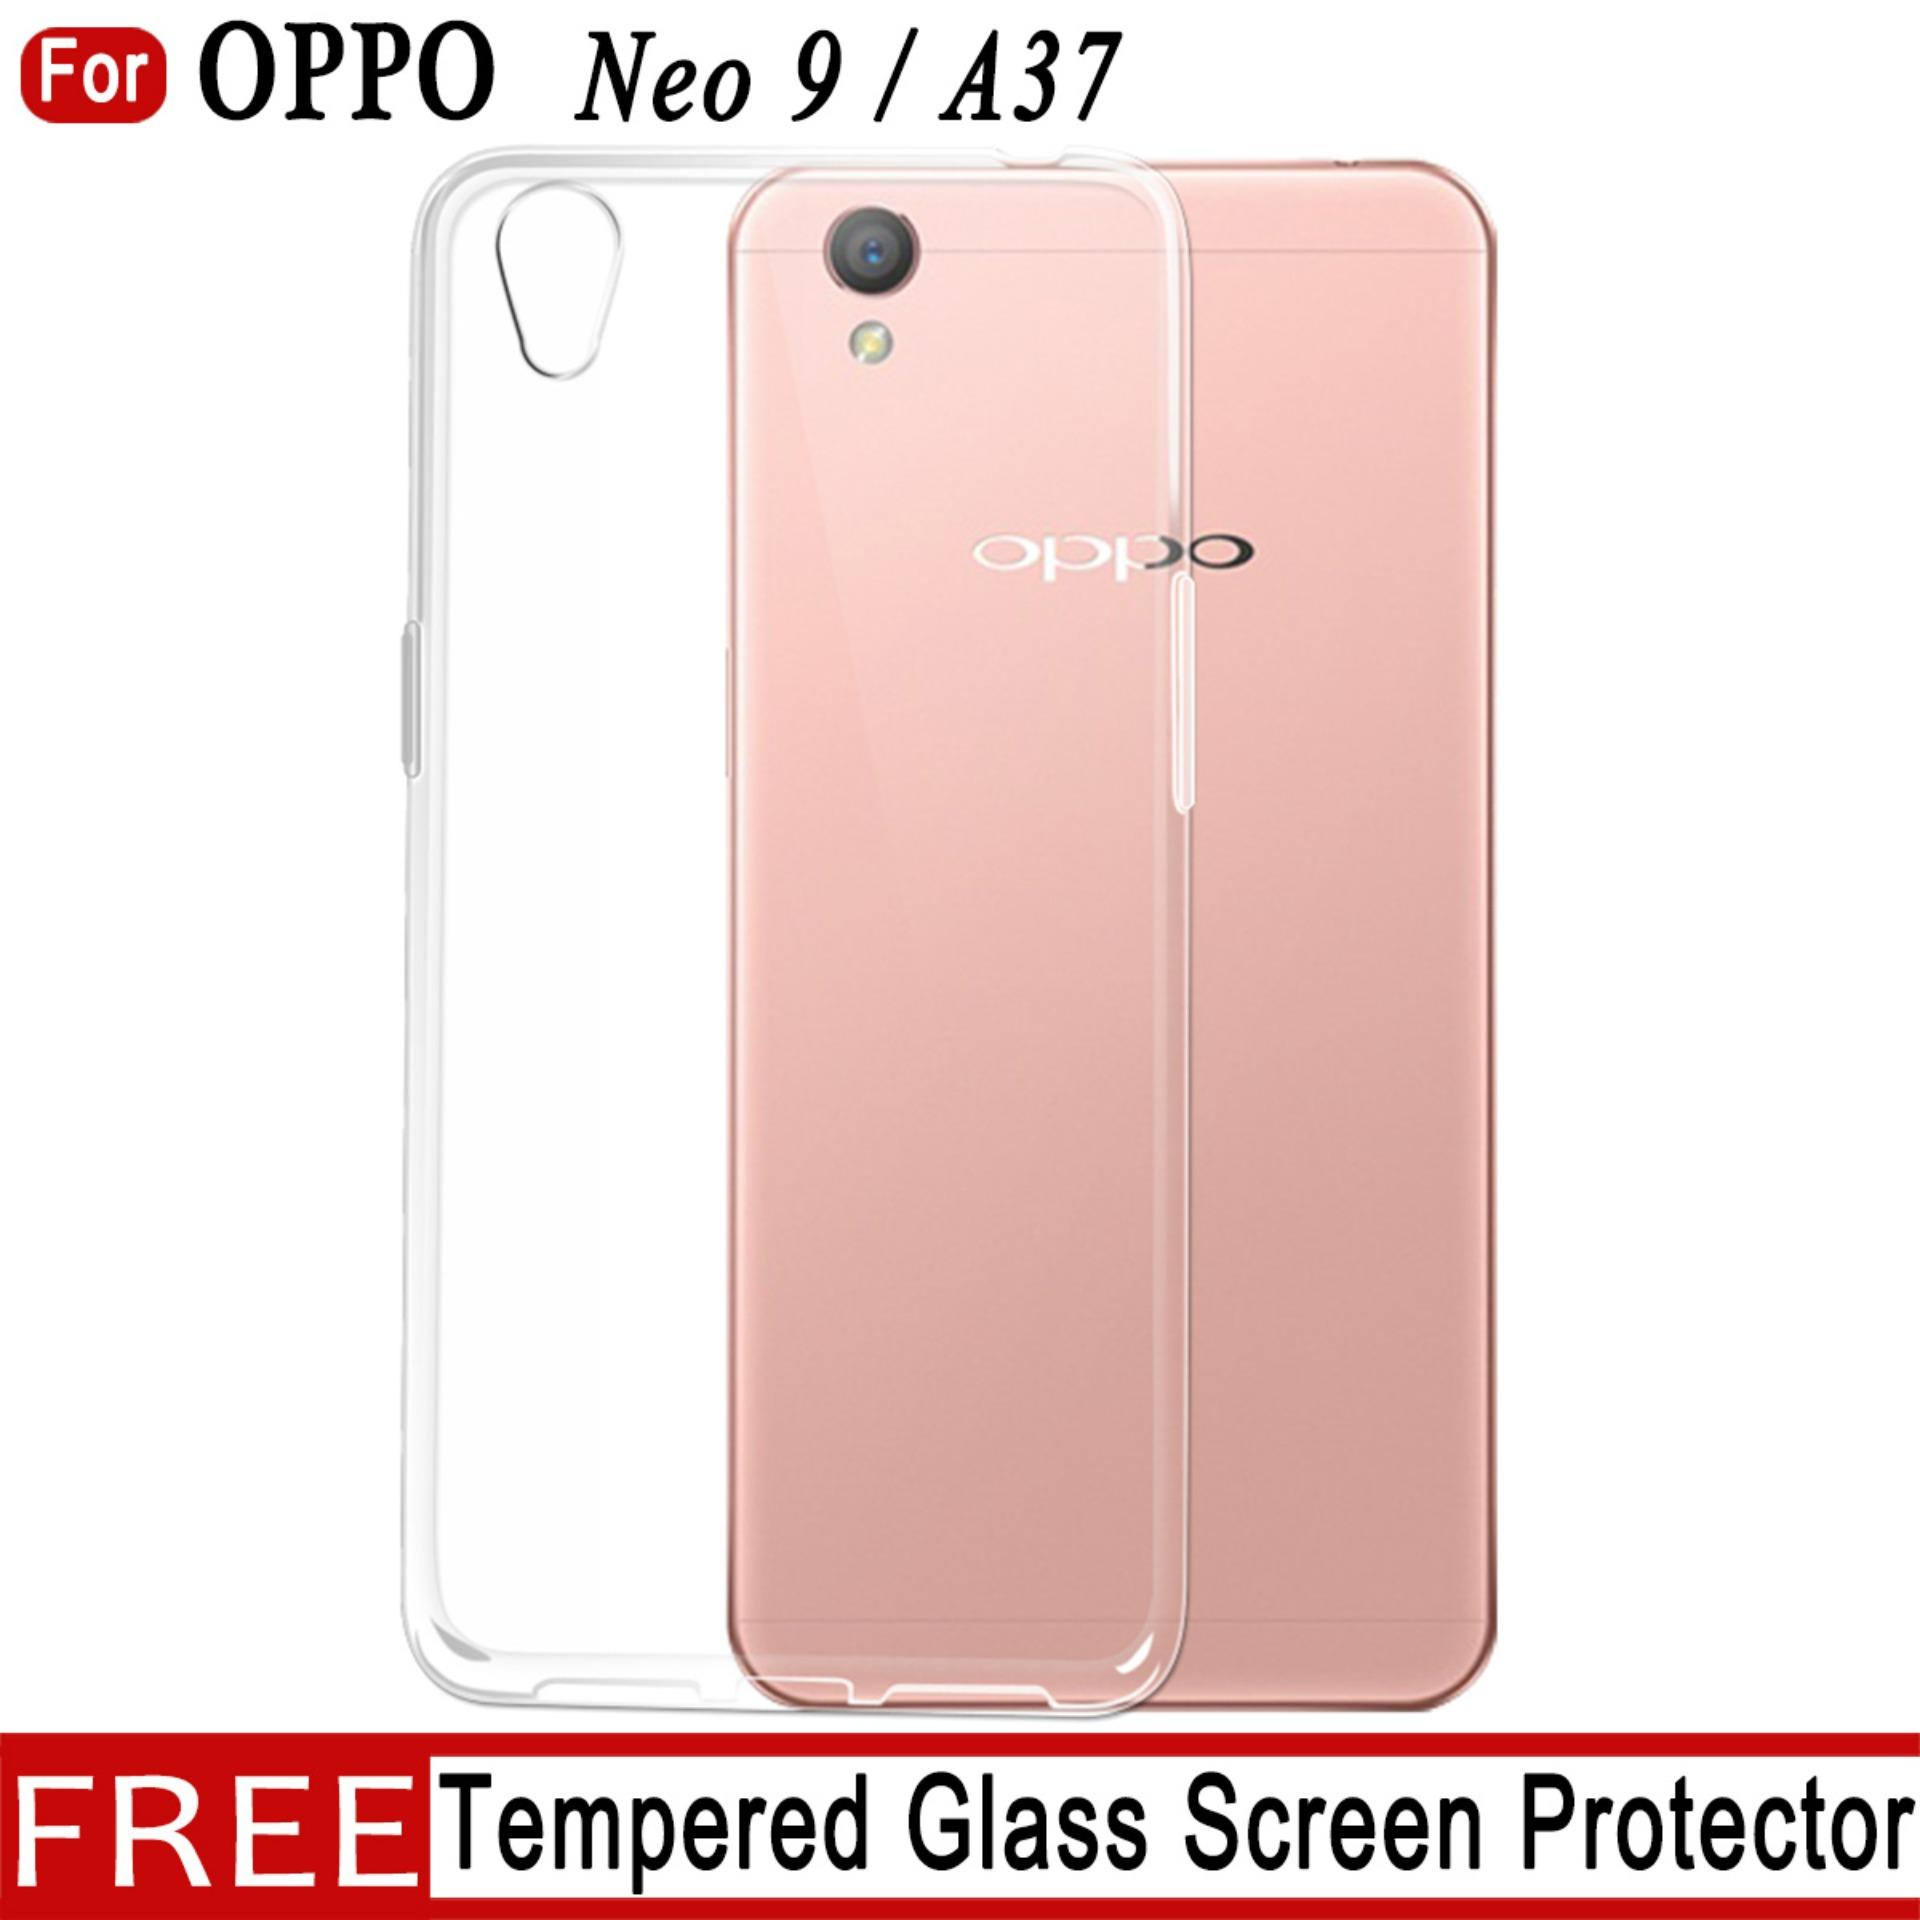 Buy Sell Cheapest Oppo A37 Neo Best Quality Product Deals Case Jelly Free Tempered Glass For 9 Clear Soft